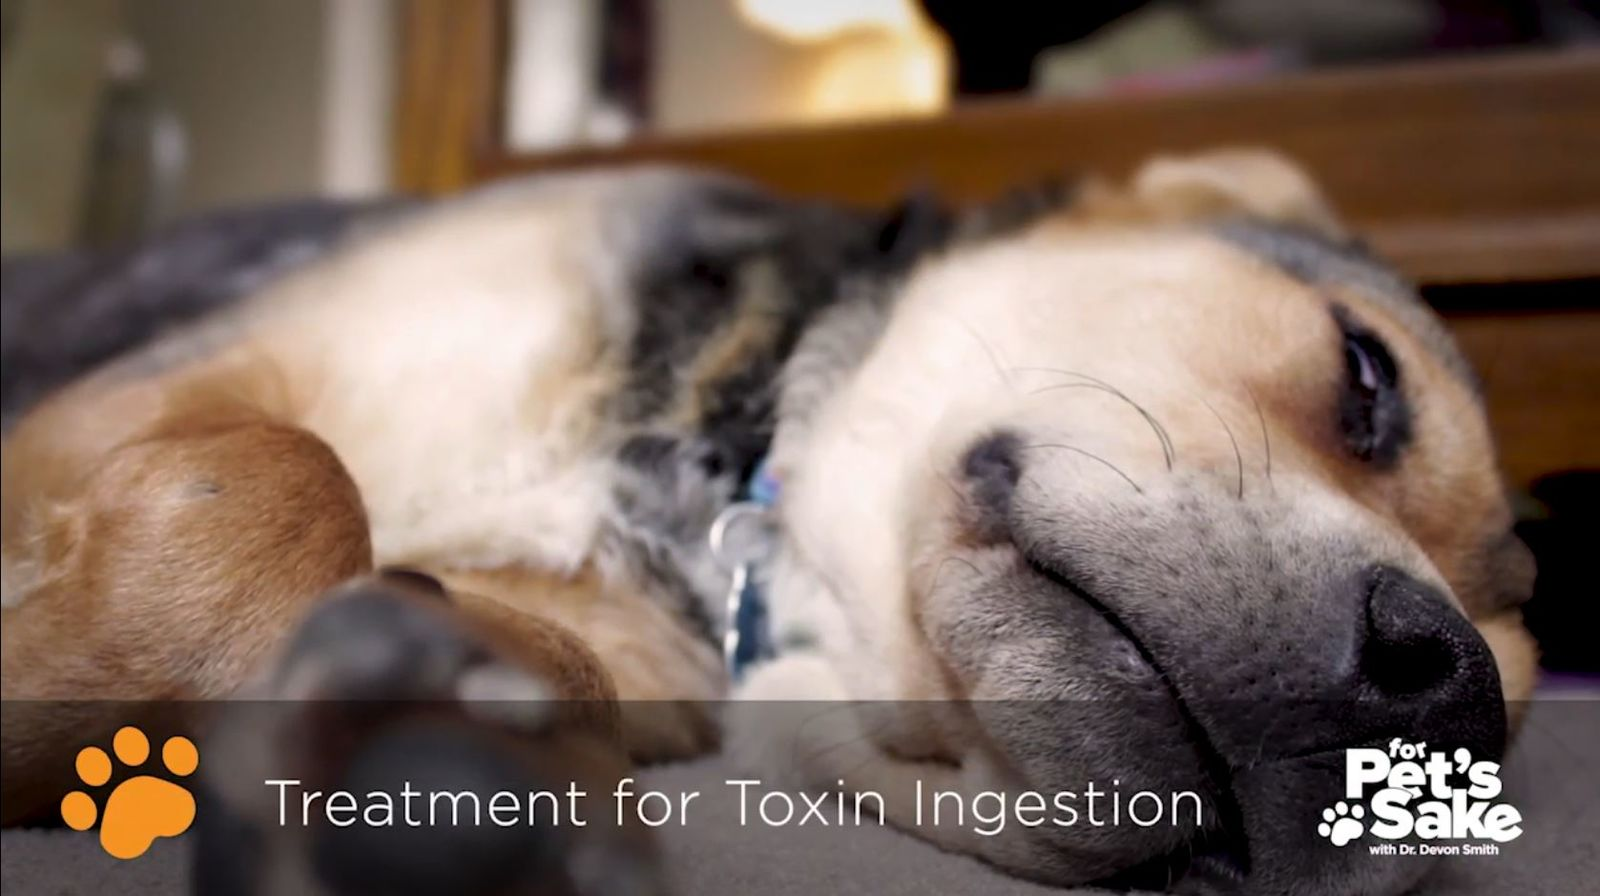 There are treatments available for toxin ingestion{ } (Sinclair Broadcasting Group)